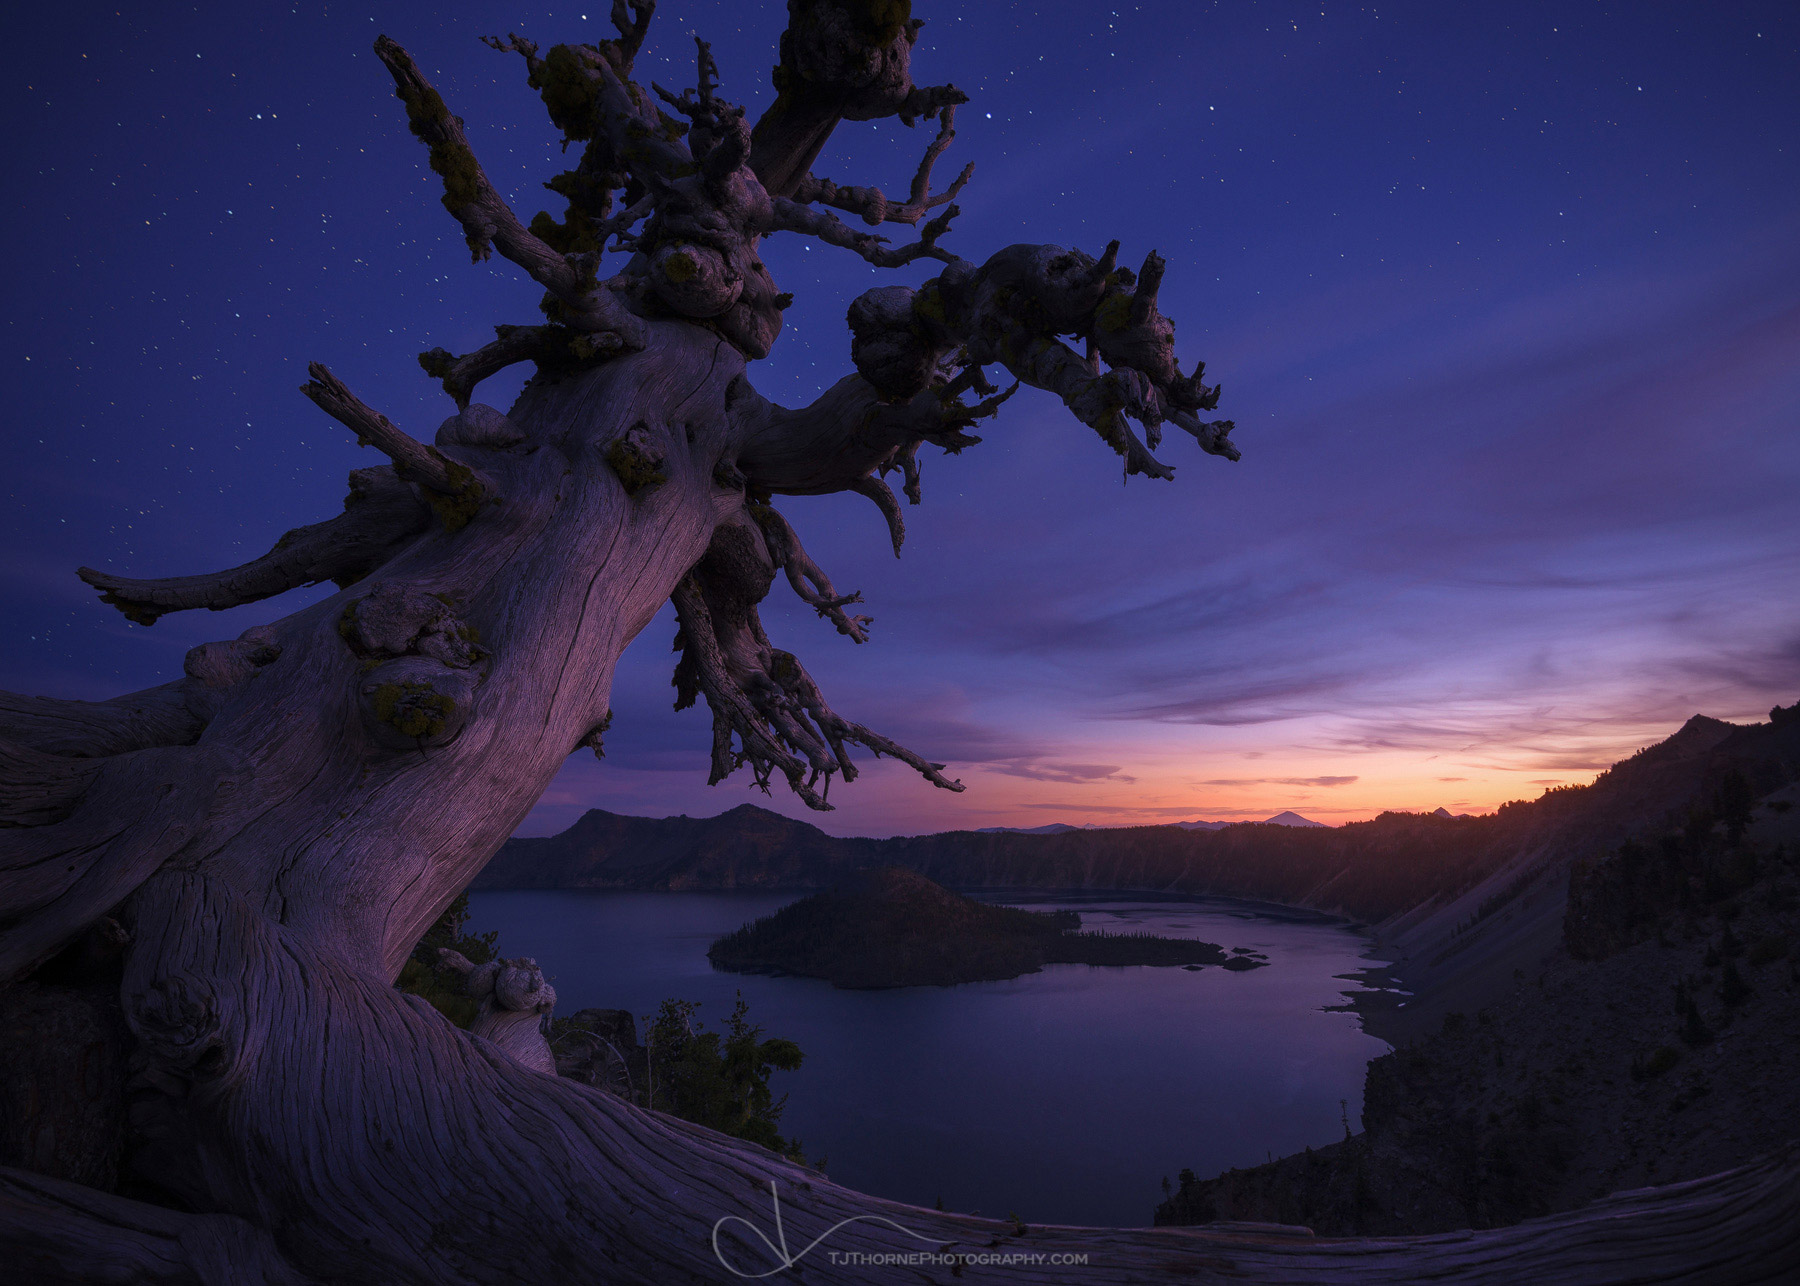 FINE ARTUNLIMITED OPEN EDITION A whitebark pine overlooks Crater Lake under a starry twilight sky. This is the second image...